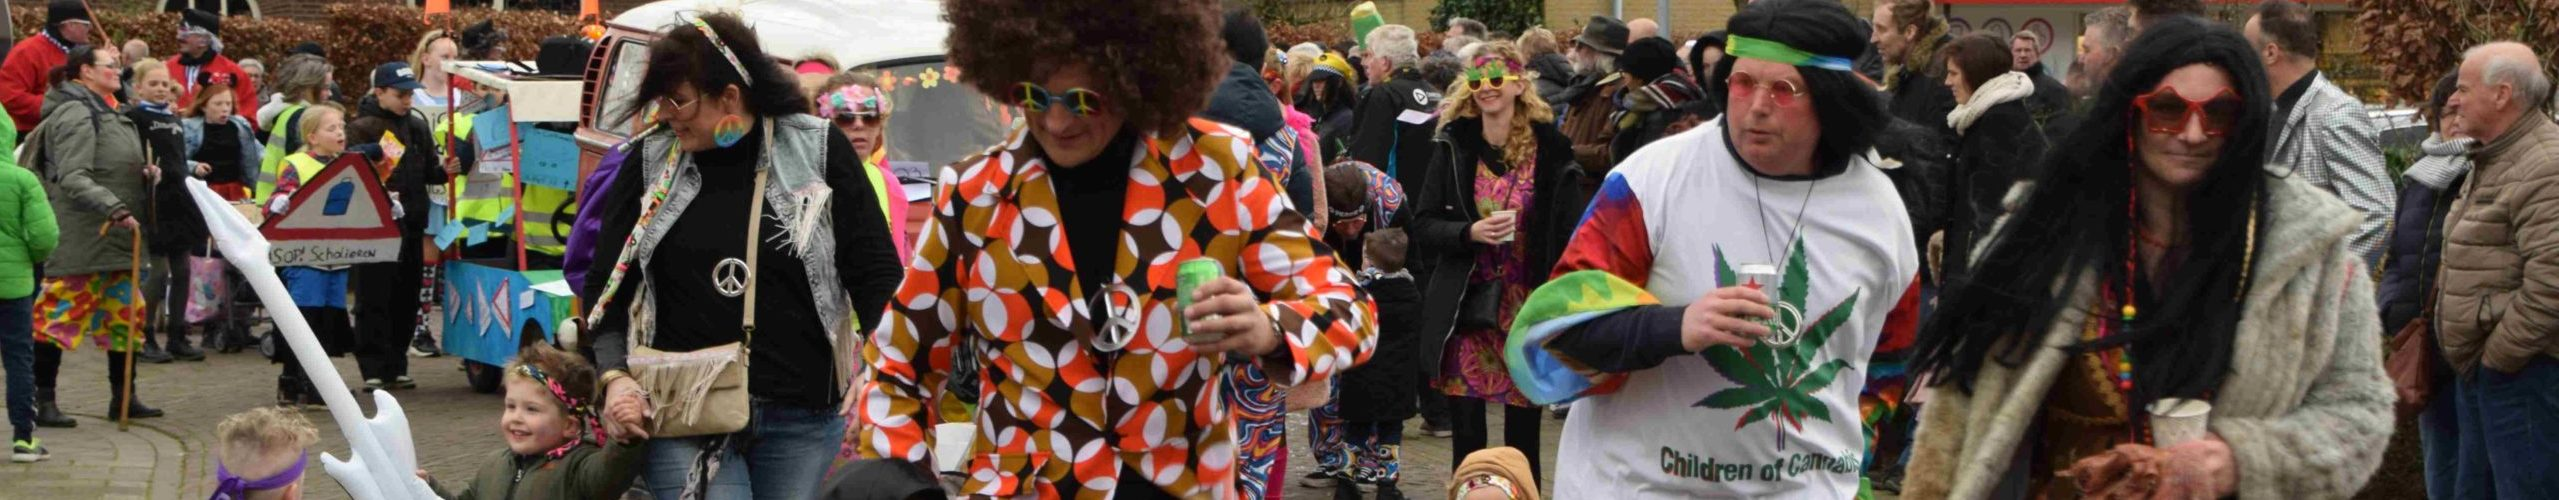 🔴😎🟢 Carnaval in Doornenburg